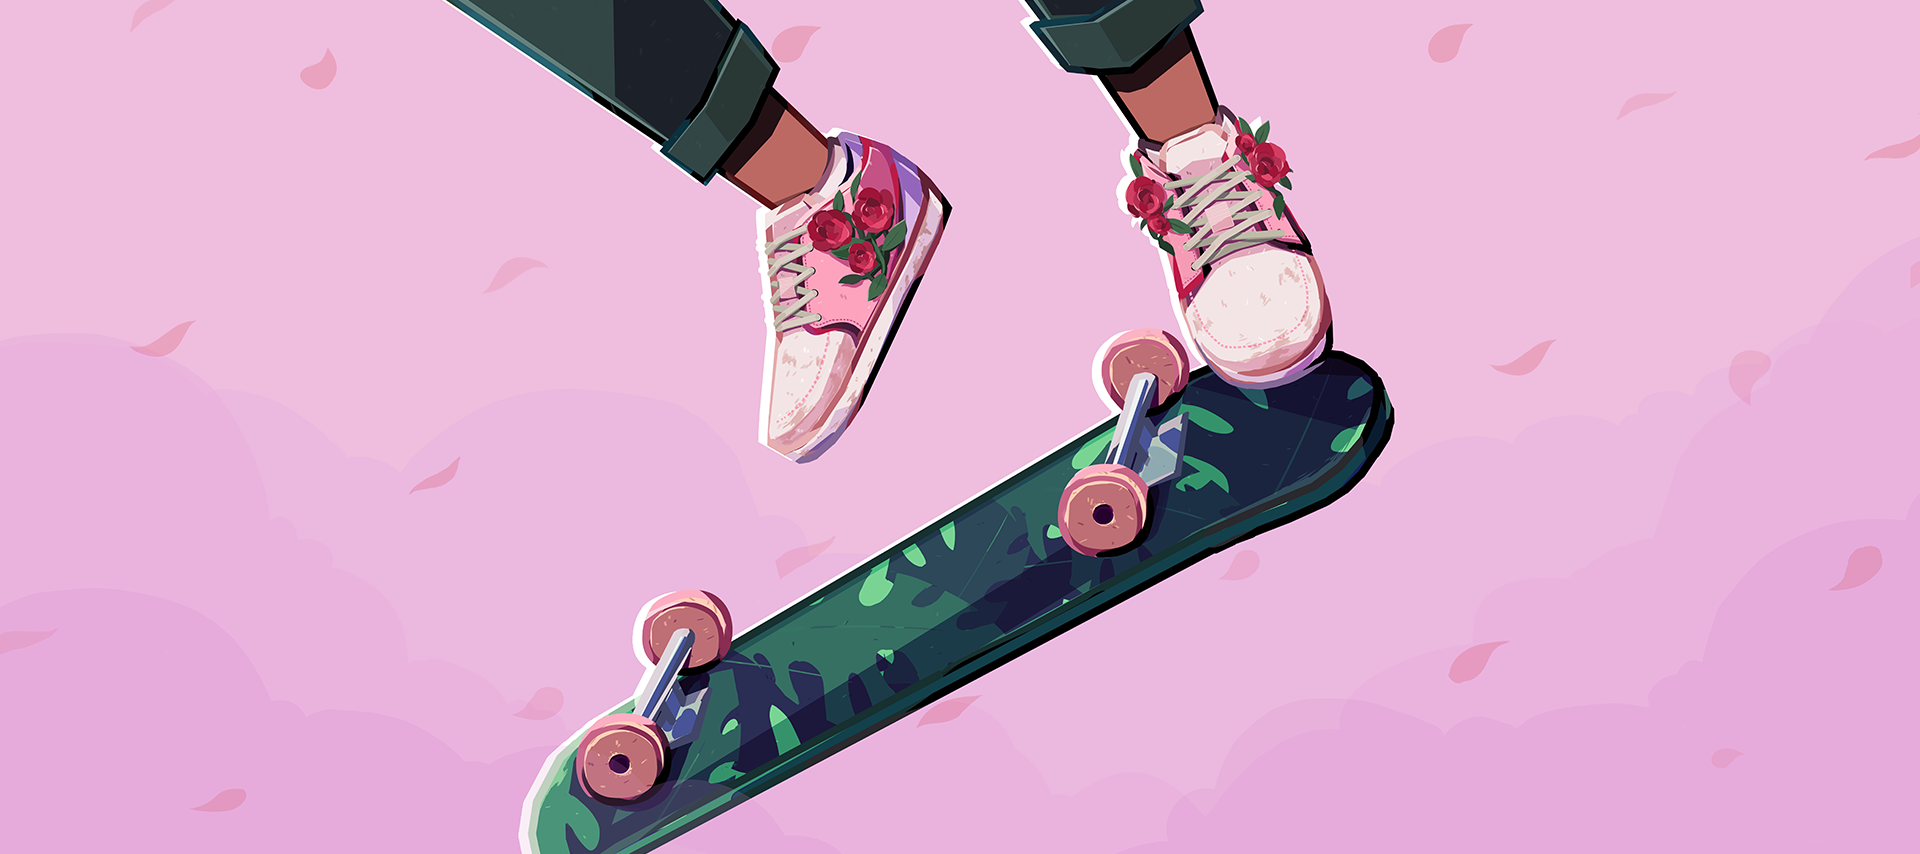 Closeup of a skateboard with two shoes jumping over it. The shoes are pink and have red flowers, and the skateboard has deep green leaves.